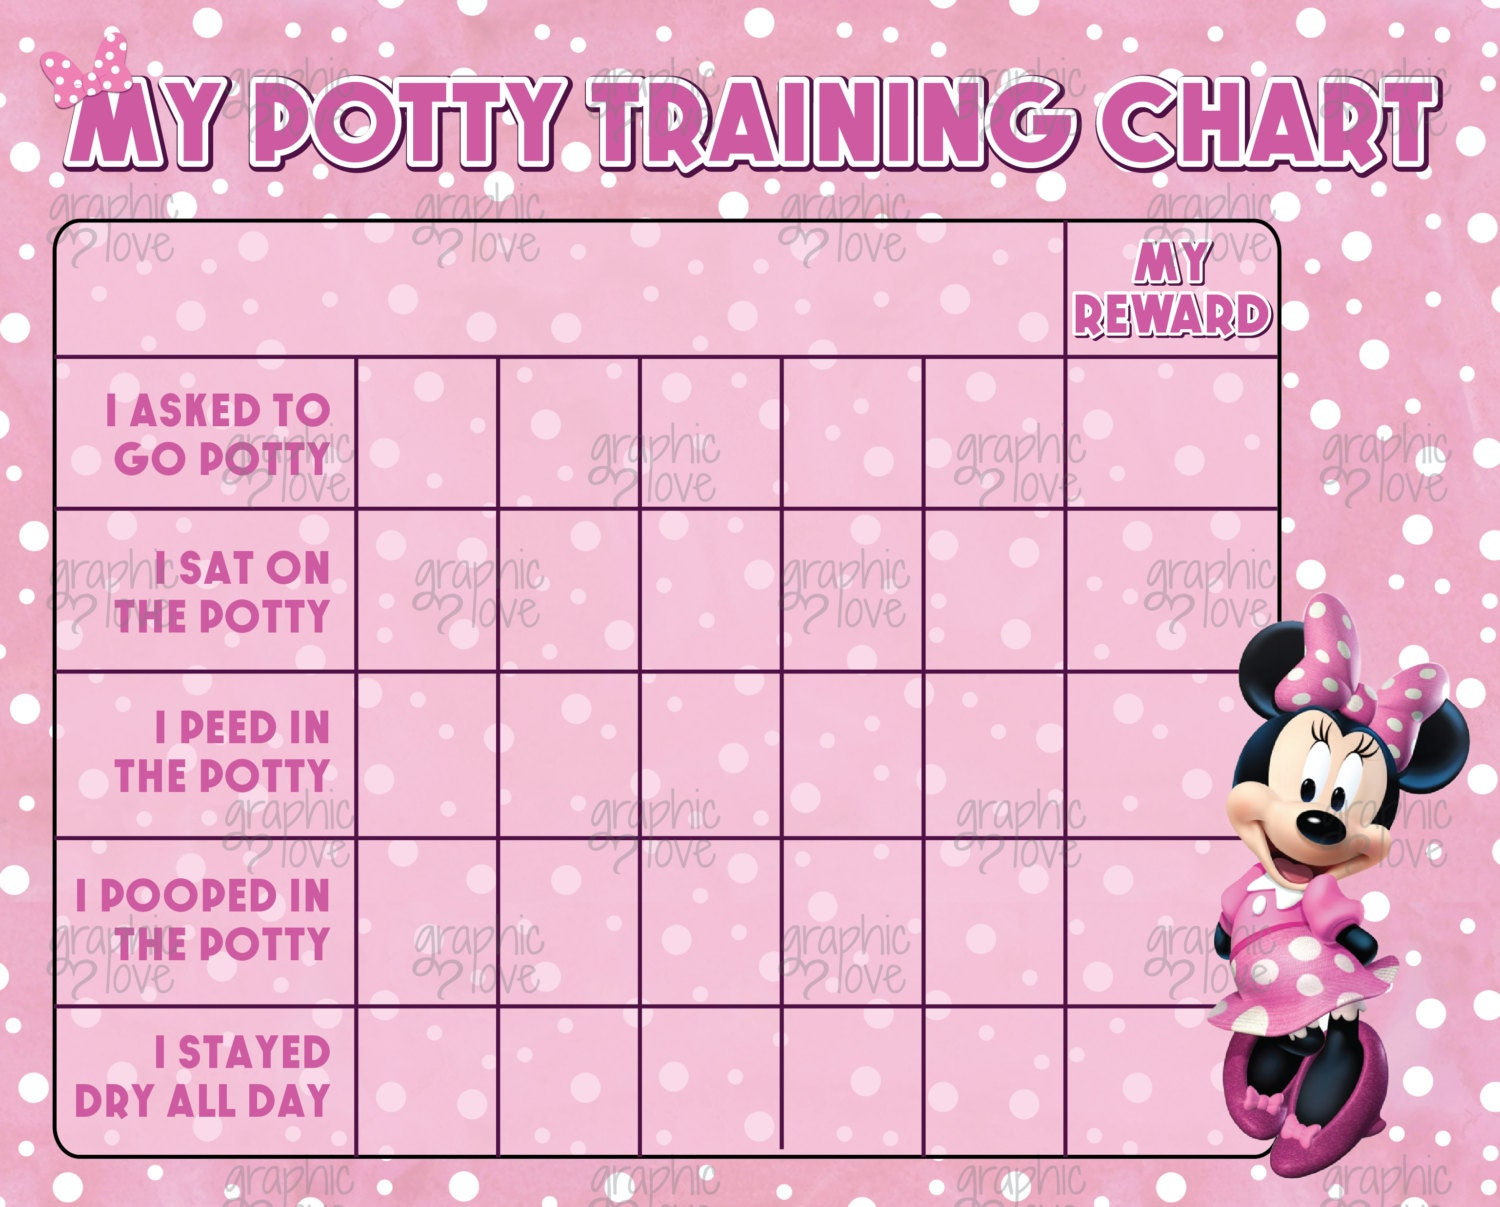 printable minnie mouse pink potty training chart punch cards printable minnie mouse pink potty training chart punch cards digital jpg files instant